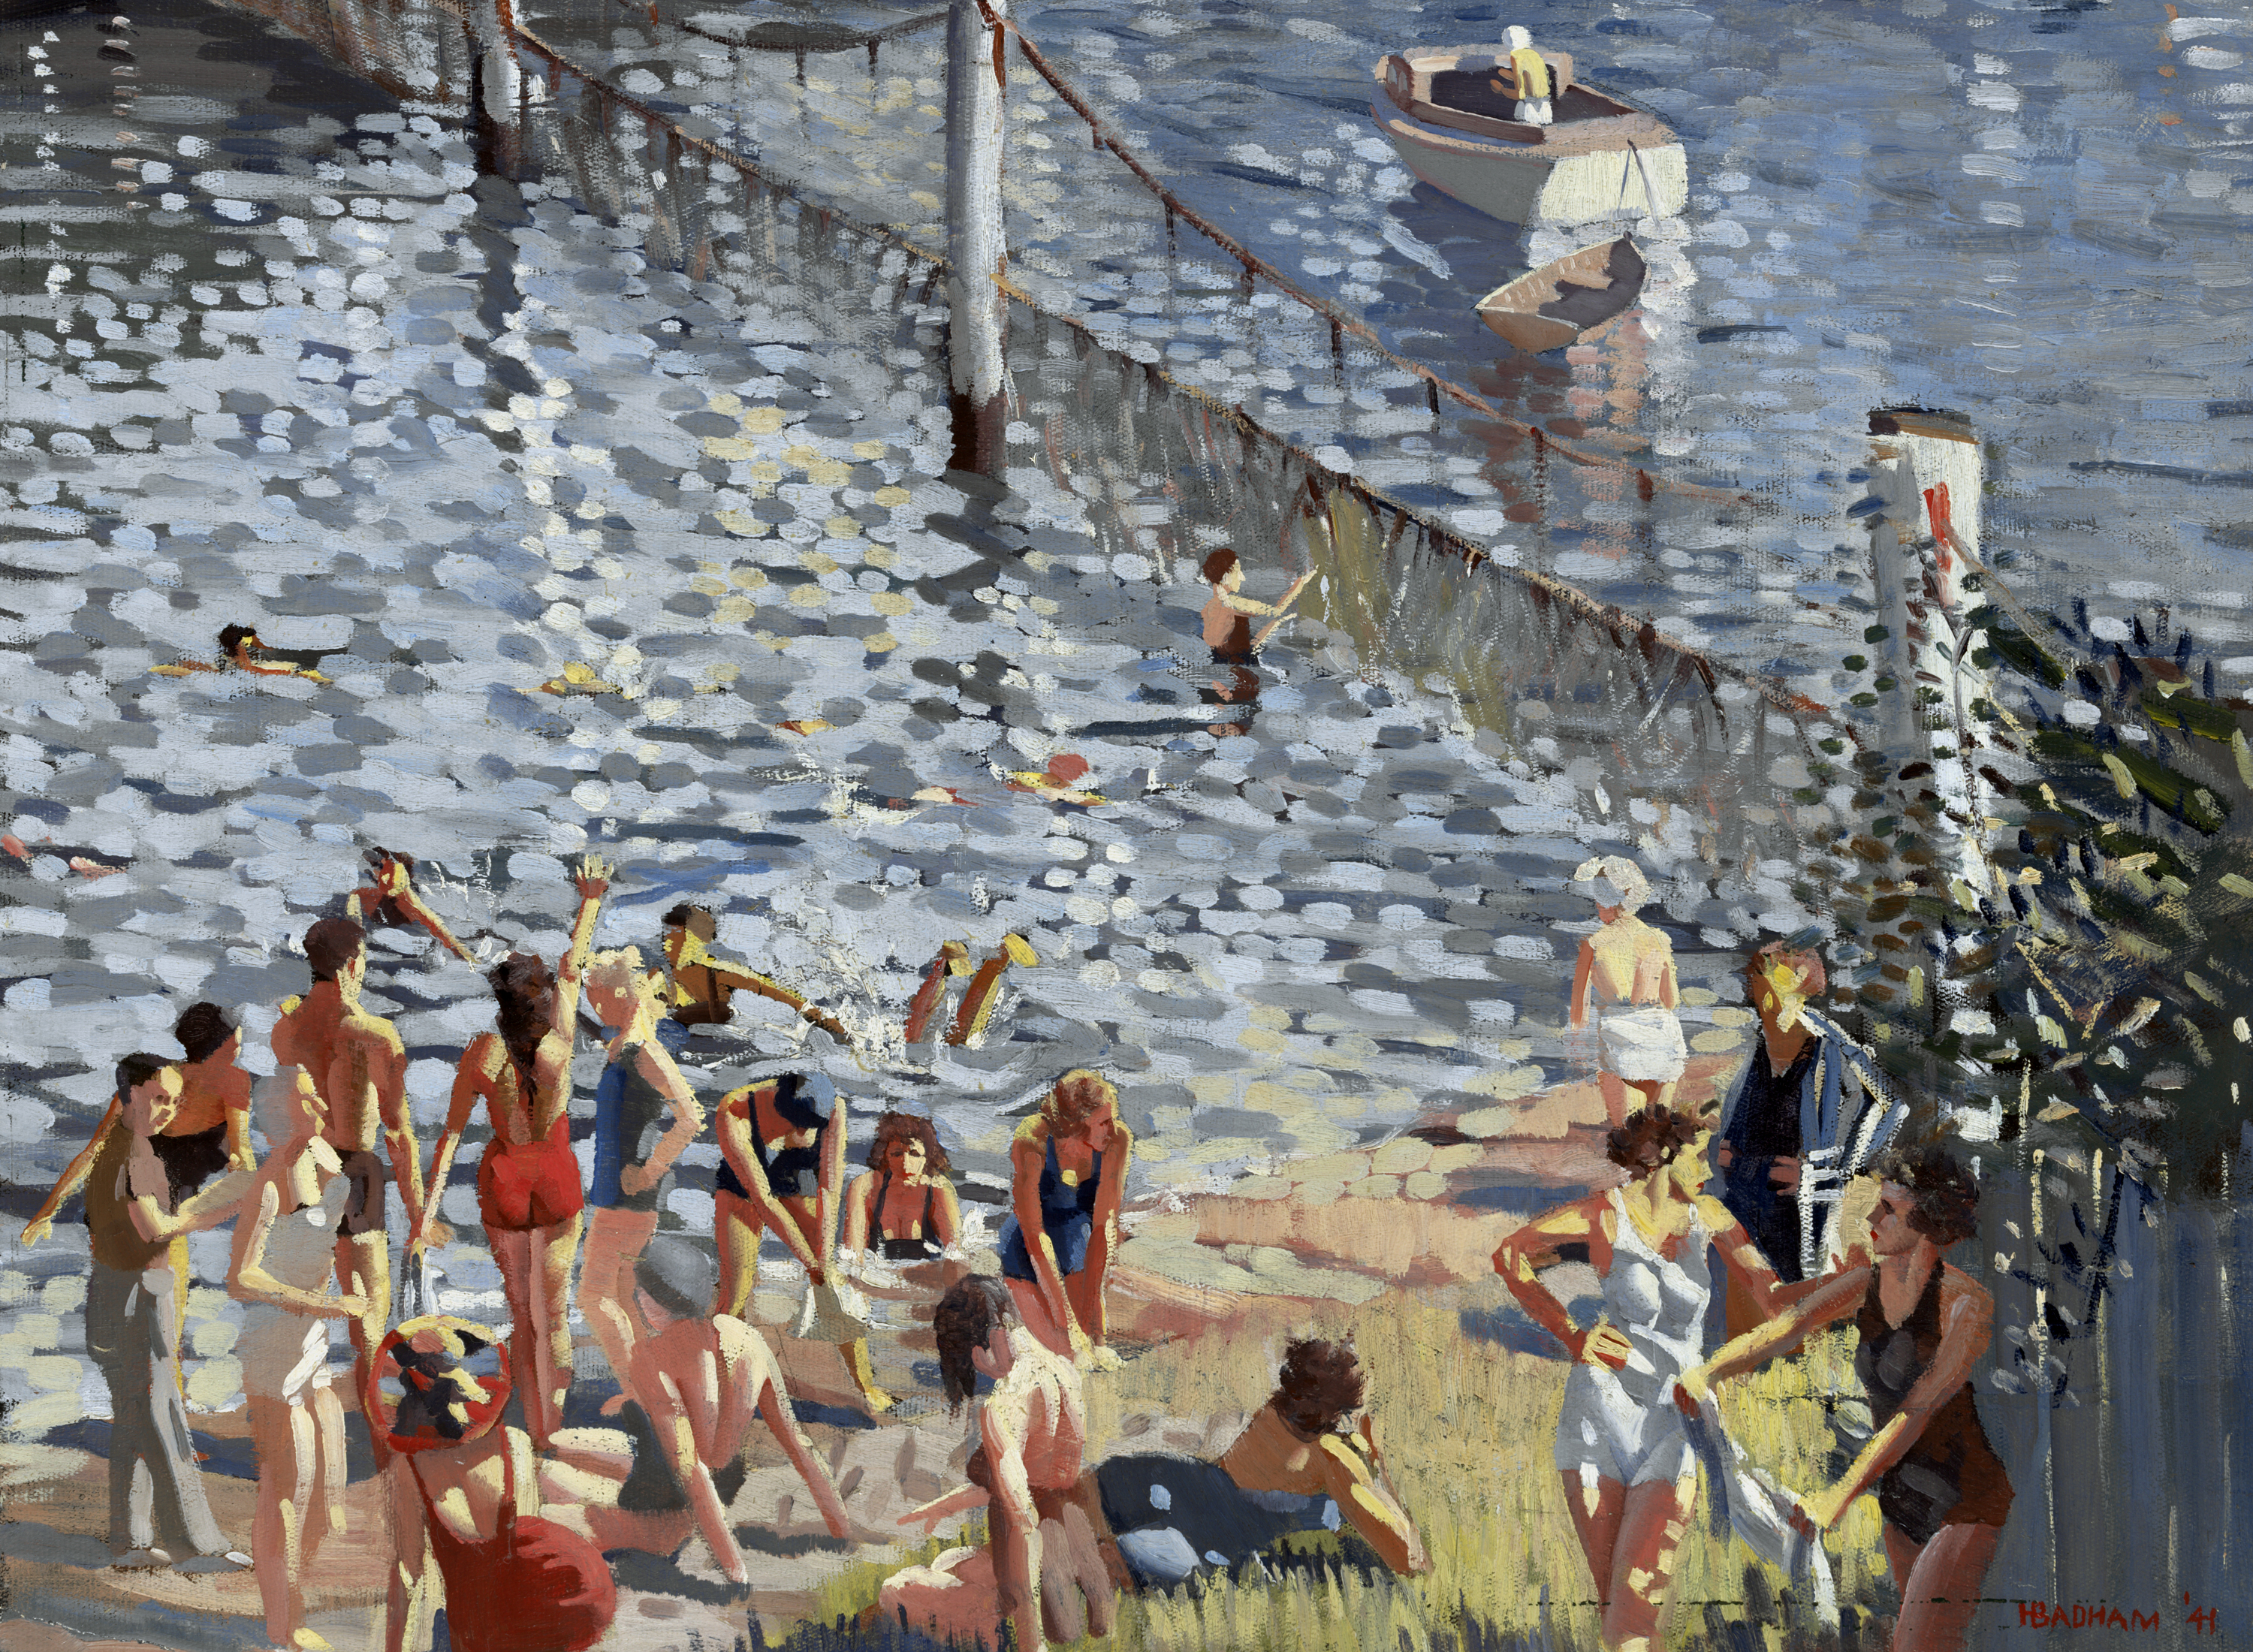 Painting of a scene at an enclosed swimming area of a natural body of water.